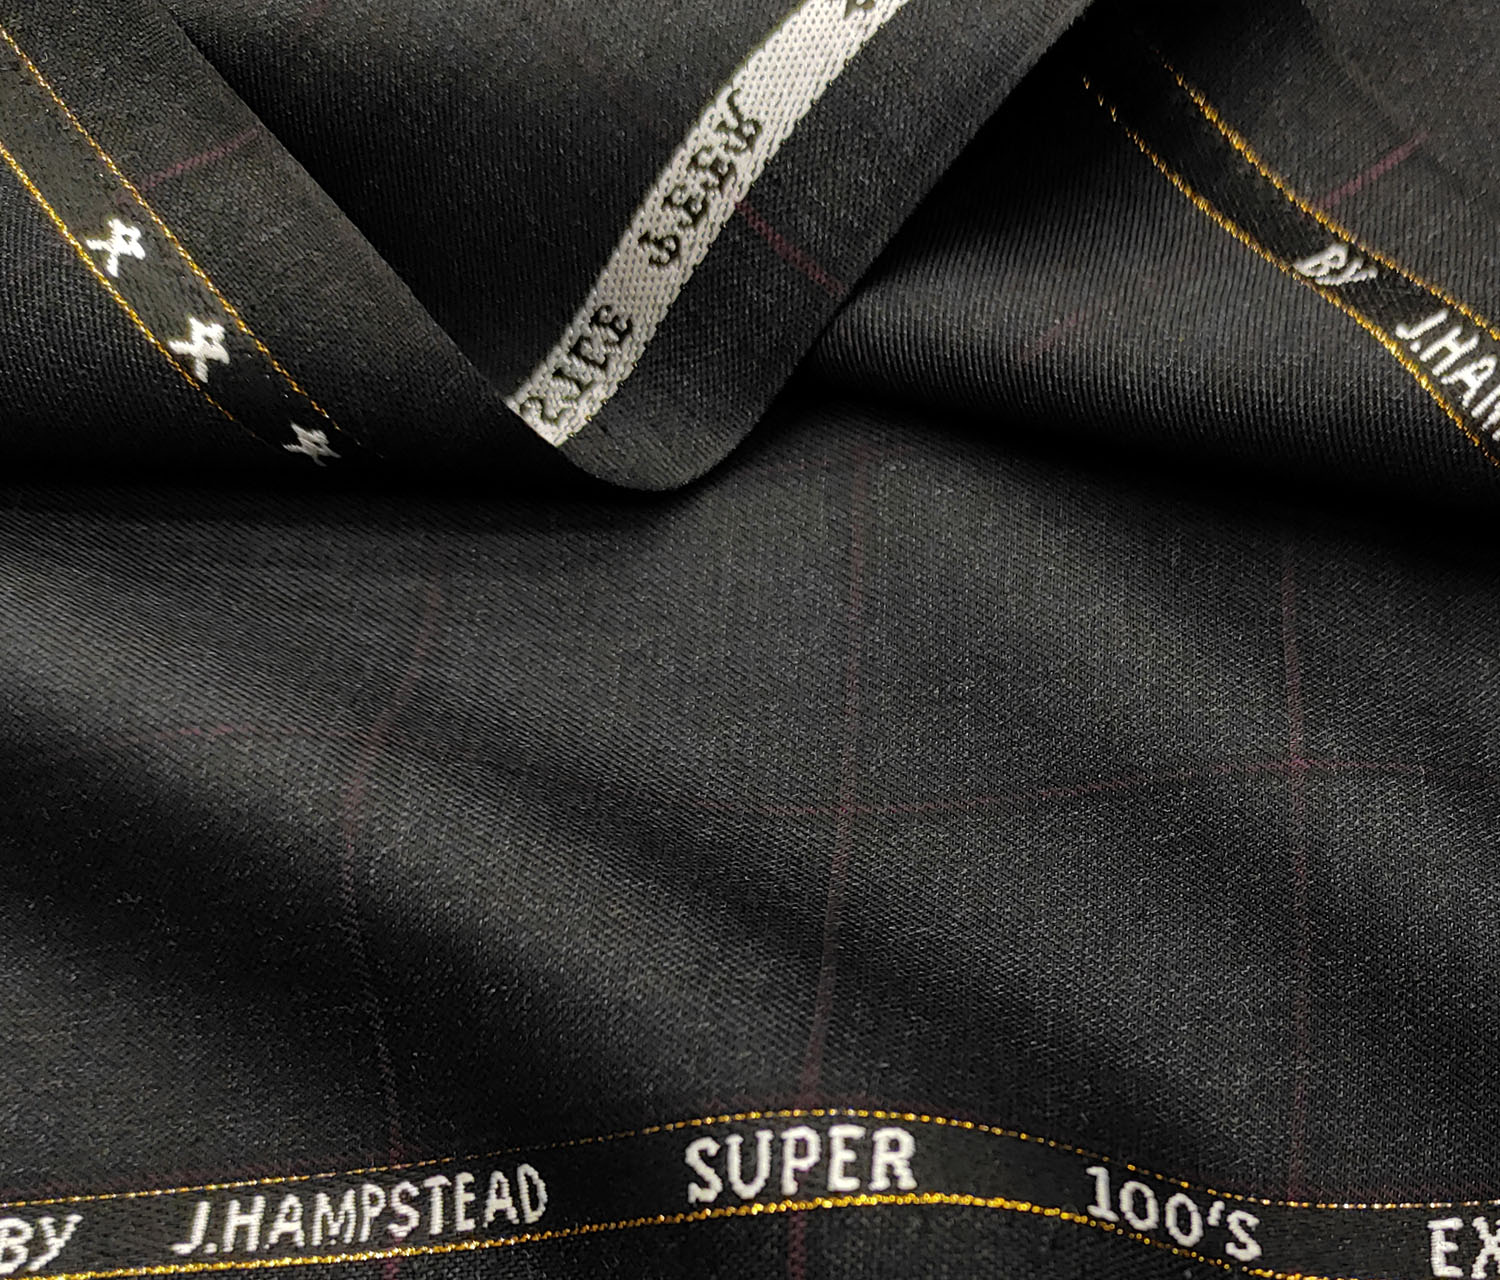 J.Hampstead Men's Wool Checks Super 100's 3.75 Meter Unstitched Suiting Fabric (Dark Grey)